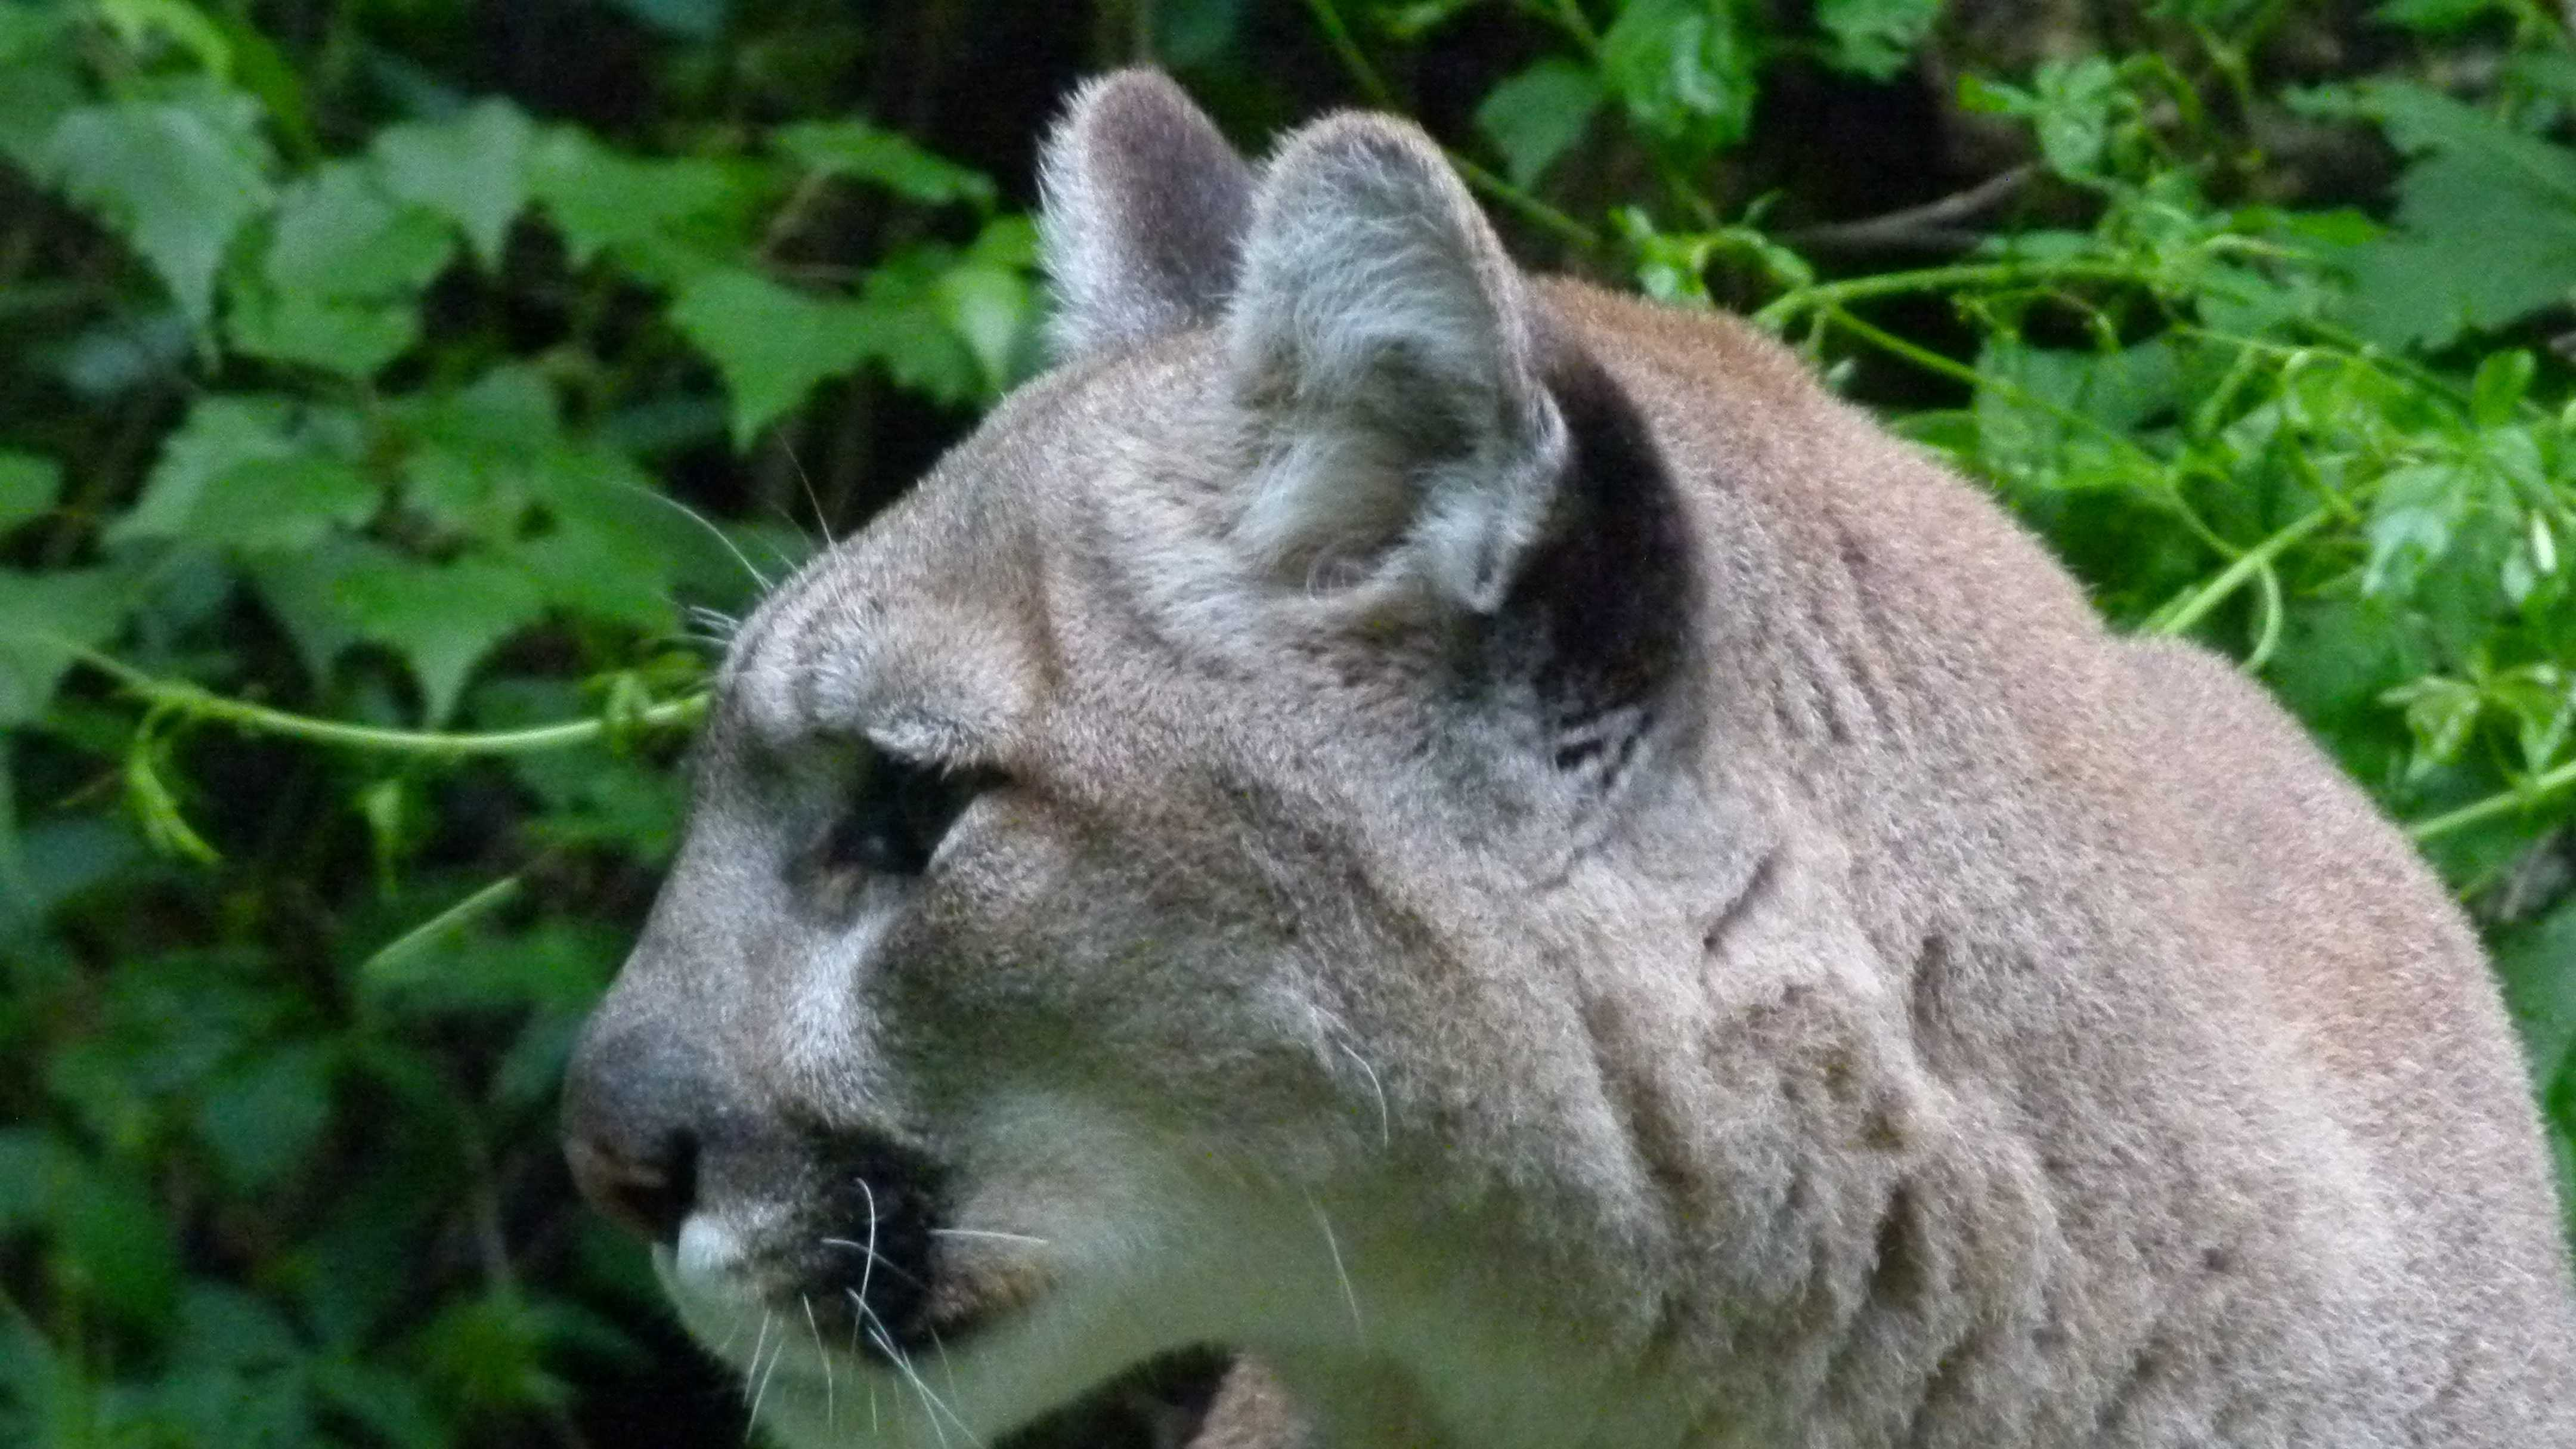 Mountain lions can be anywhere from light grey to tan, with white and dark highlights are around the mouth. Males are larger than females.